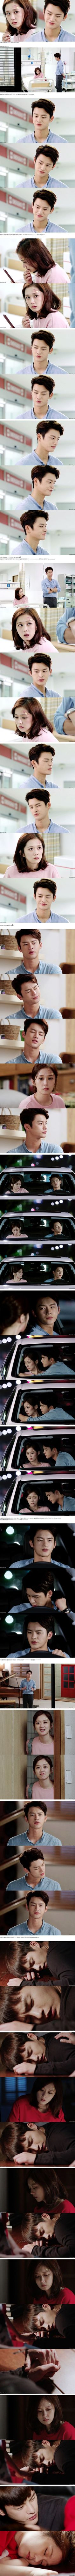 [Spoiler] Added episode 8 captures for the Korean drama 'Remember You' @ HanCinema :: The Korean Movie and Drama Database